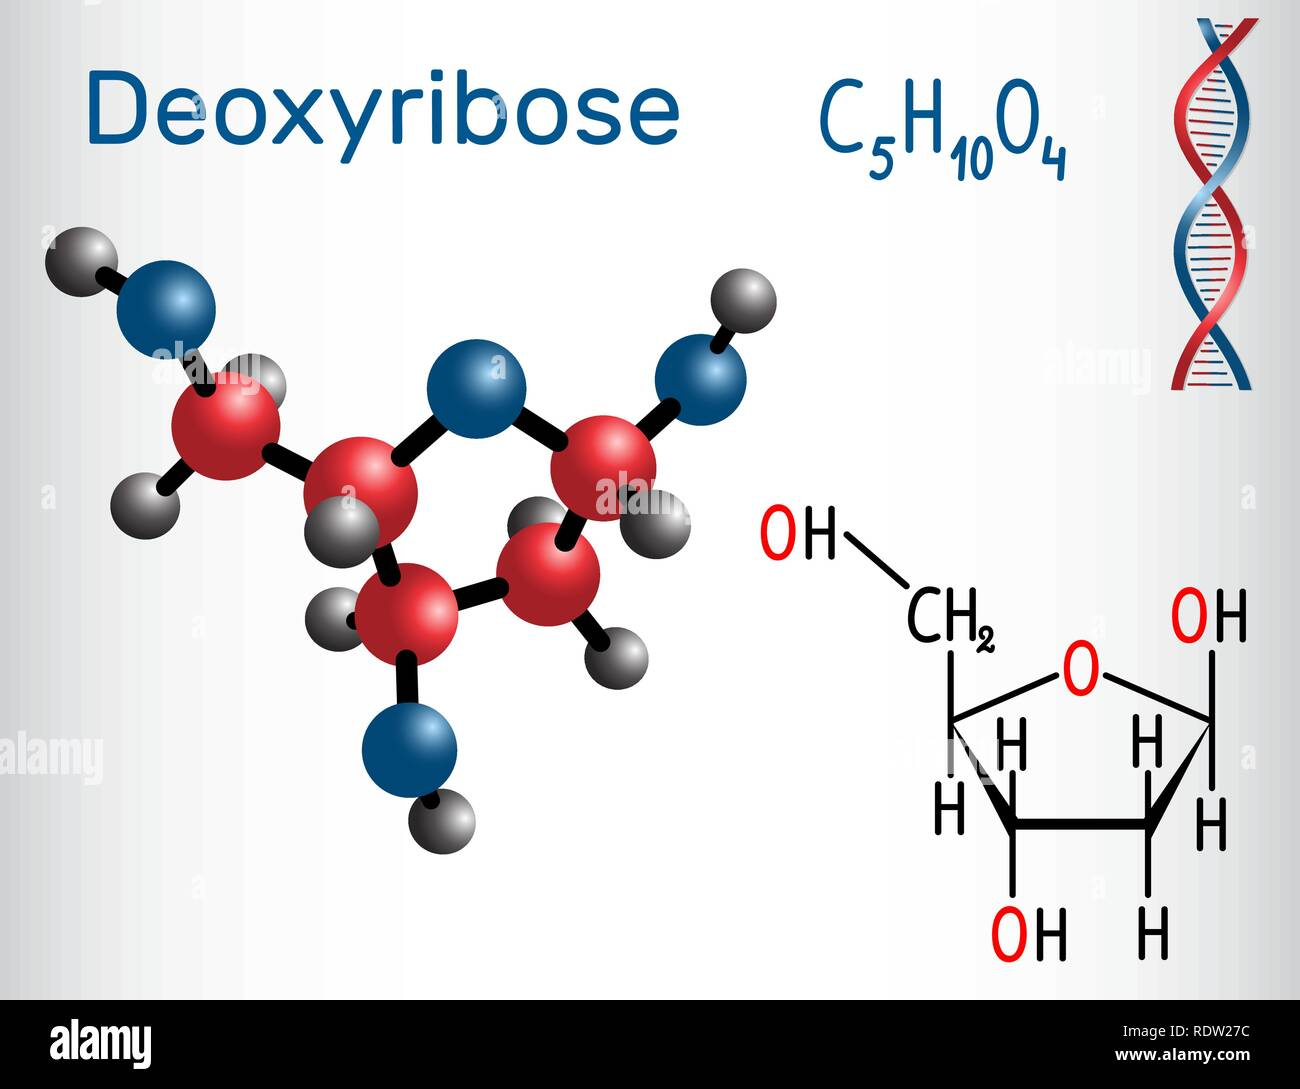 Deoxyribose molecule, it is a monosaccharide (deoxy sugar), it forms part of the backbone of DNA. Structural chemical formula and molecule model. Vect - Stock Image